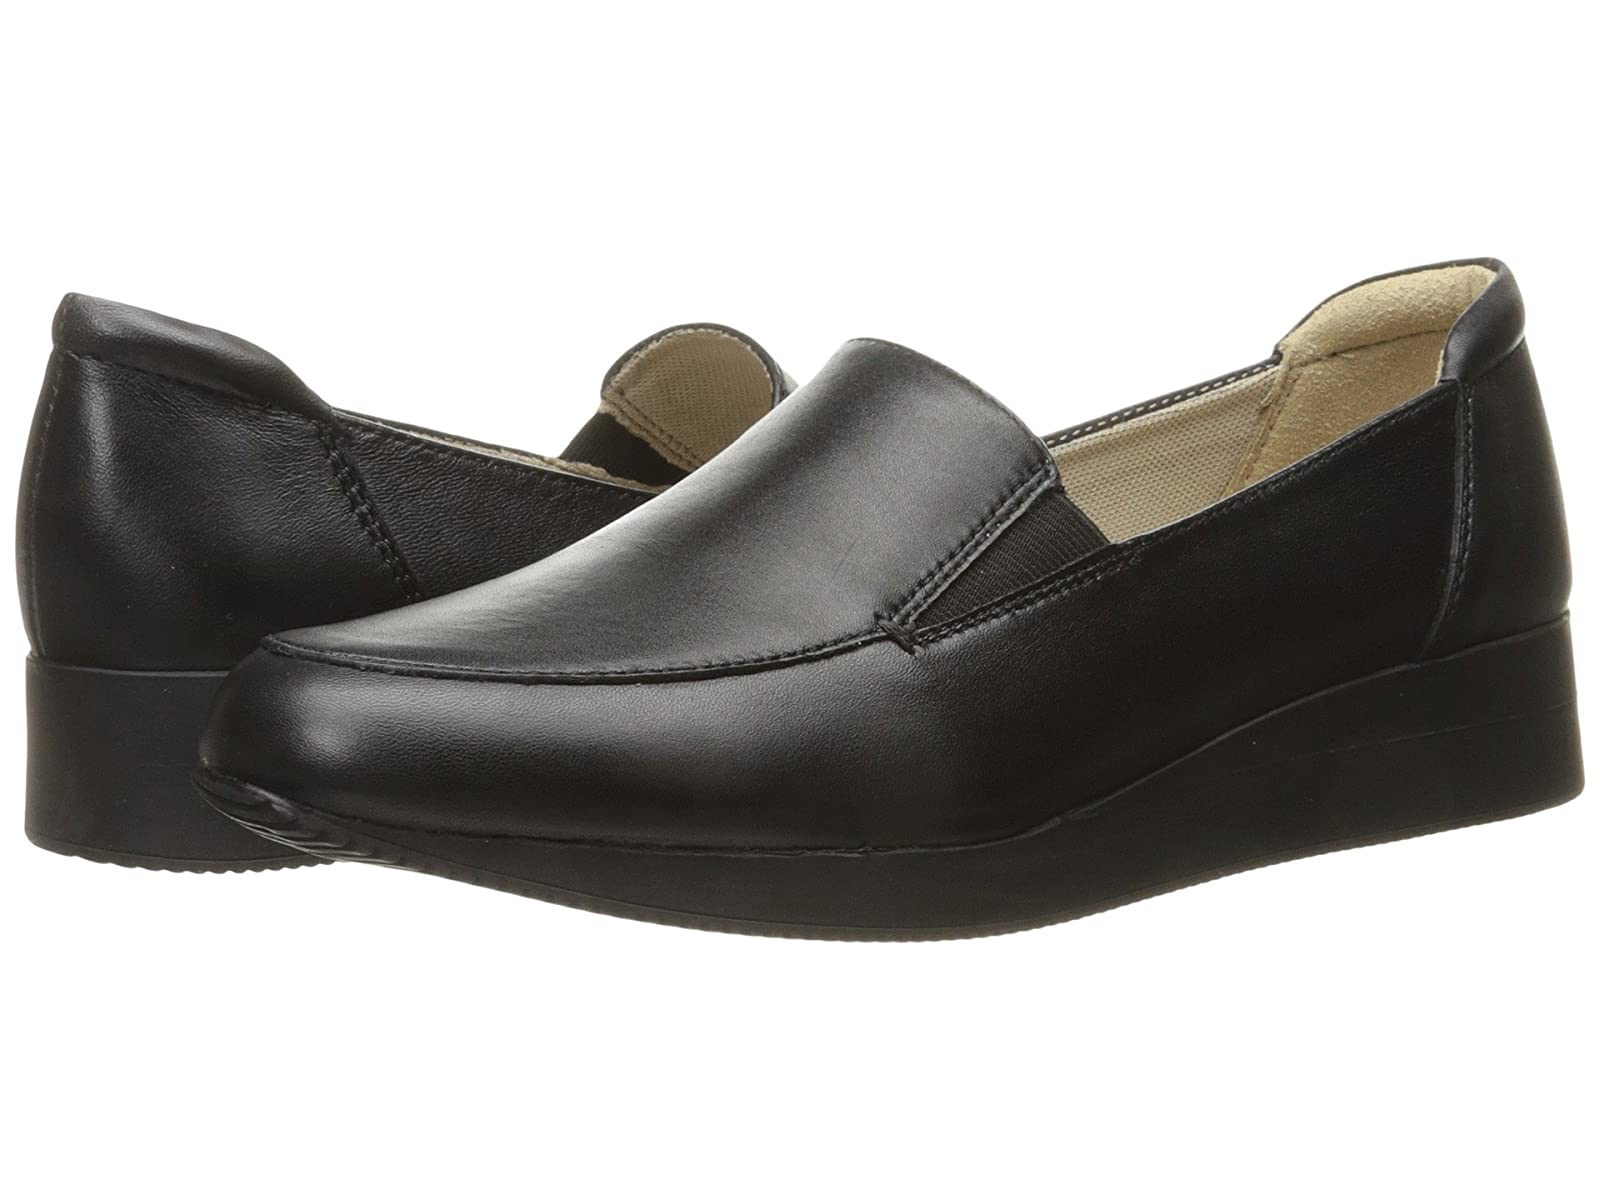 Naturalizer JanetCheap and distinctive eye-catching shoes